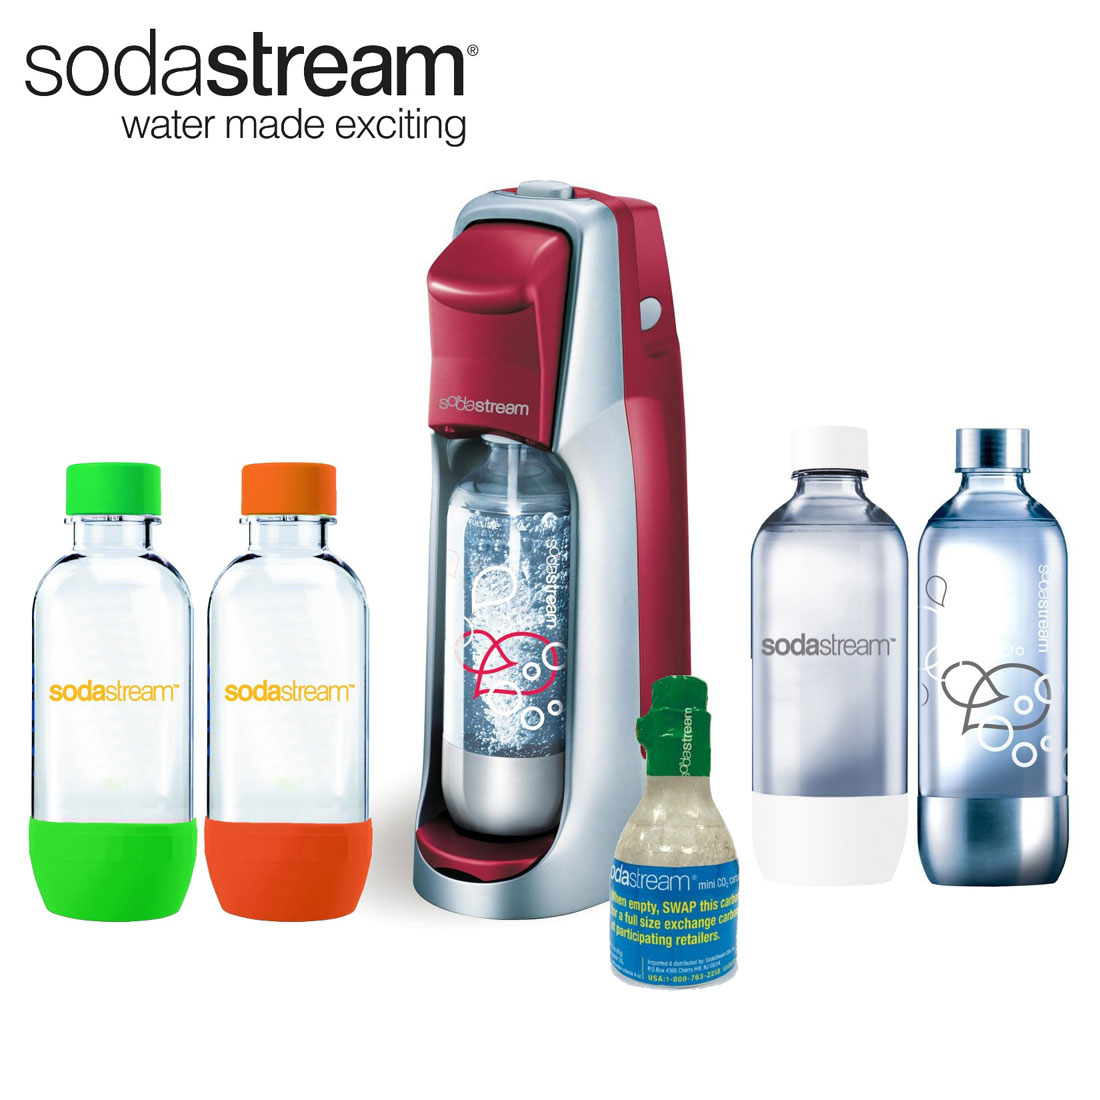 SodaStream Fountain Jet Soda Maker in Red w/ Exclusive Kit 4 Bottles & Mini CO2